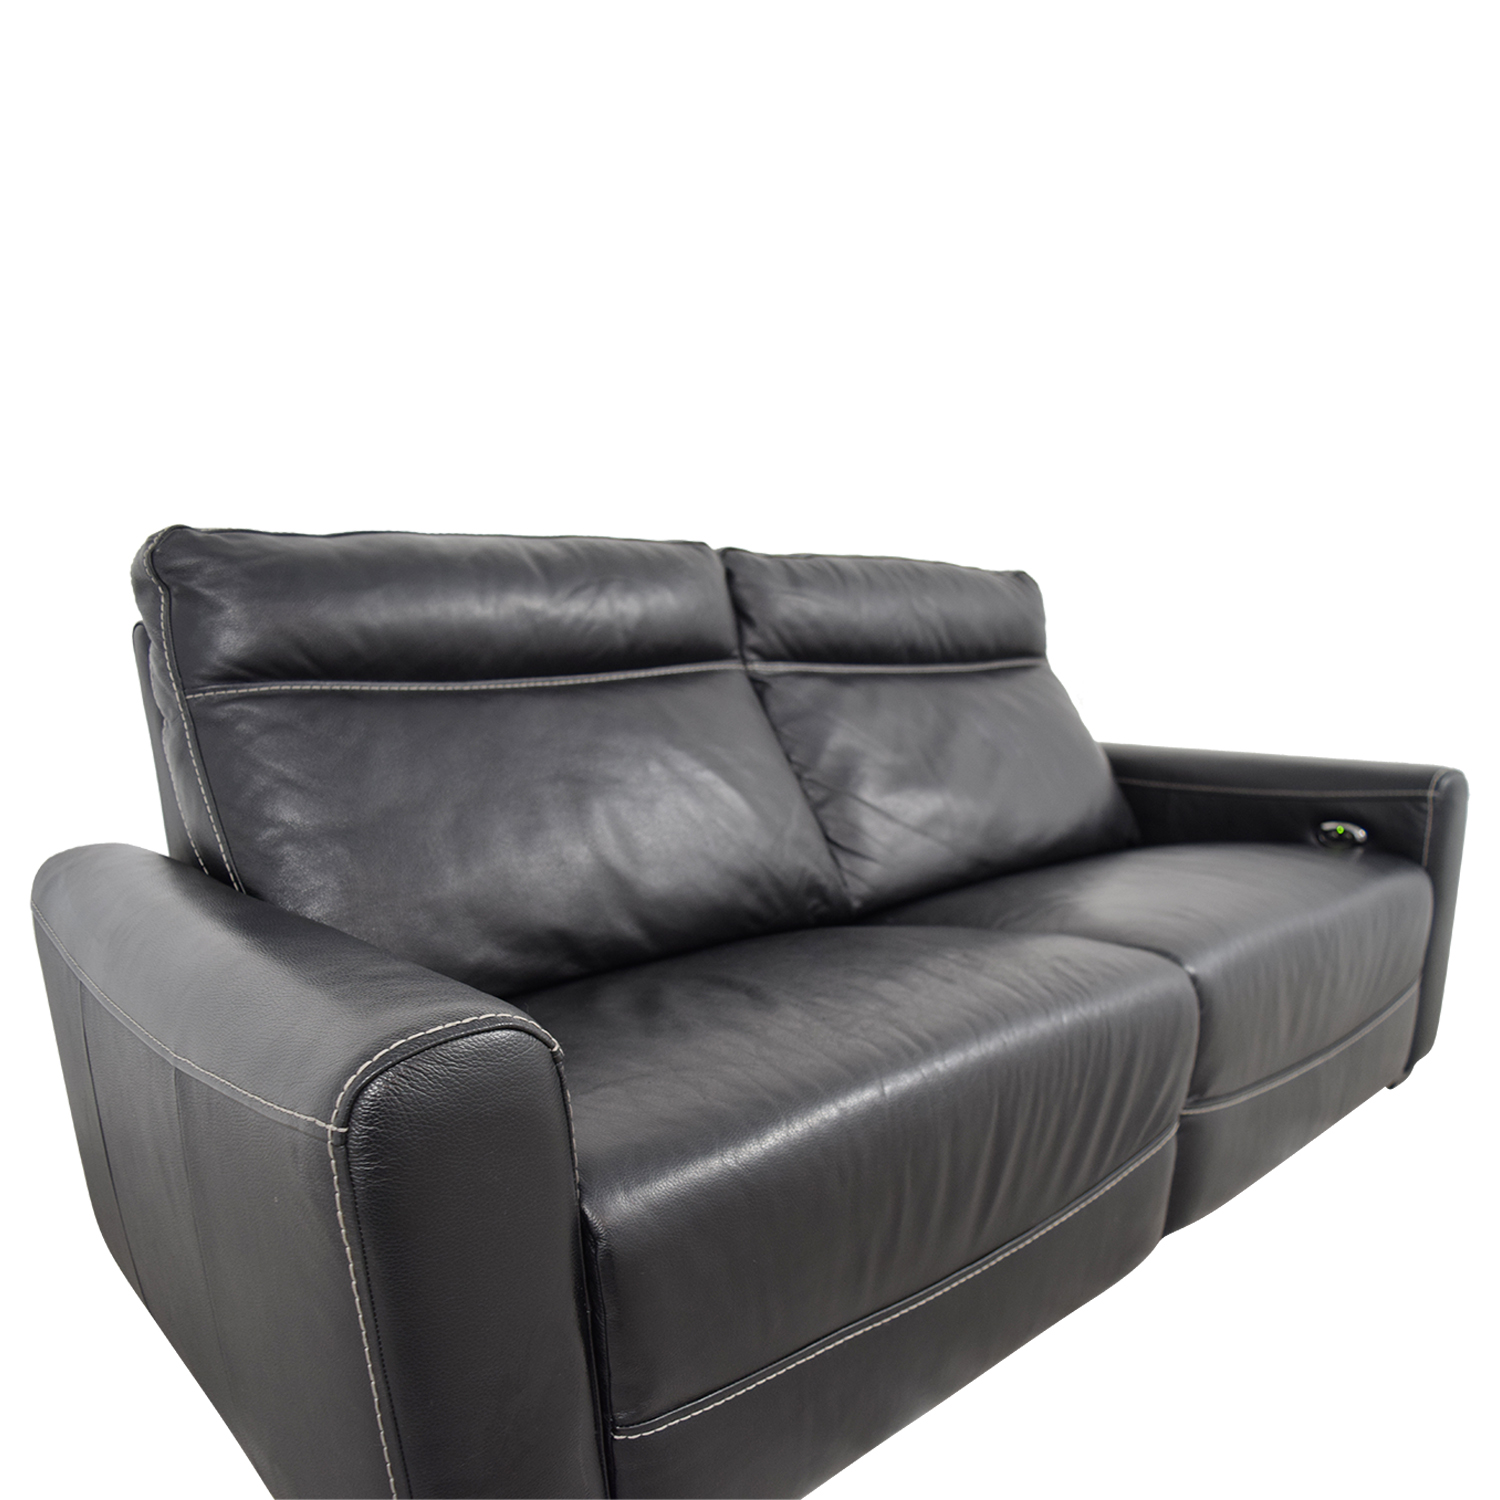 Macys Leather Chair 80 Off Macy 39s Macy 39s Black Leather Reclining Sofa Sofas